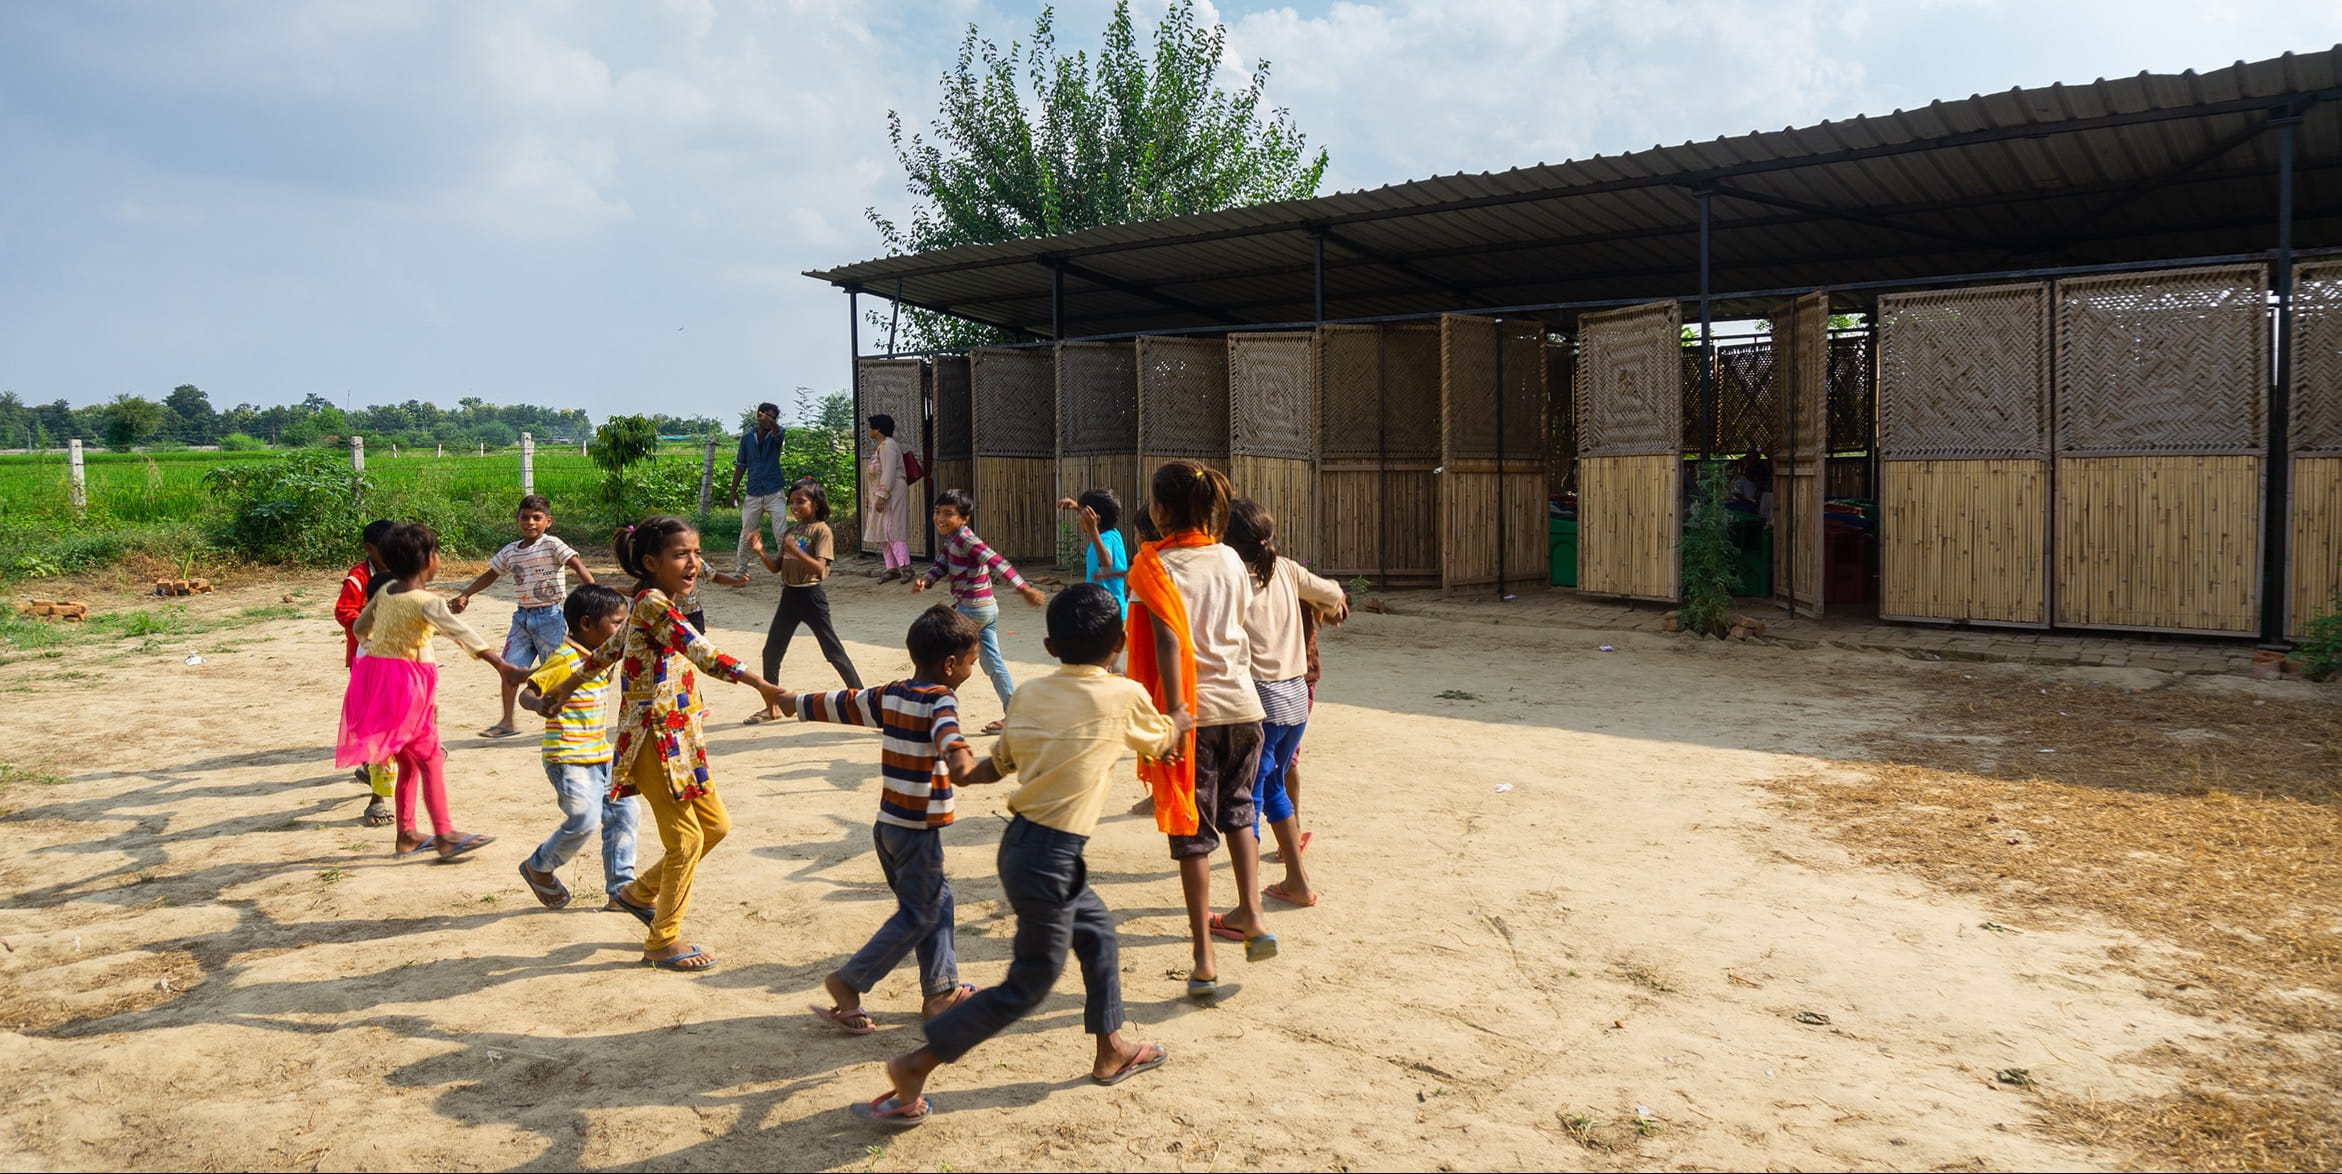 This school in Delhi is designed to be assembled in few days and disassembled in few hours